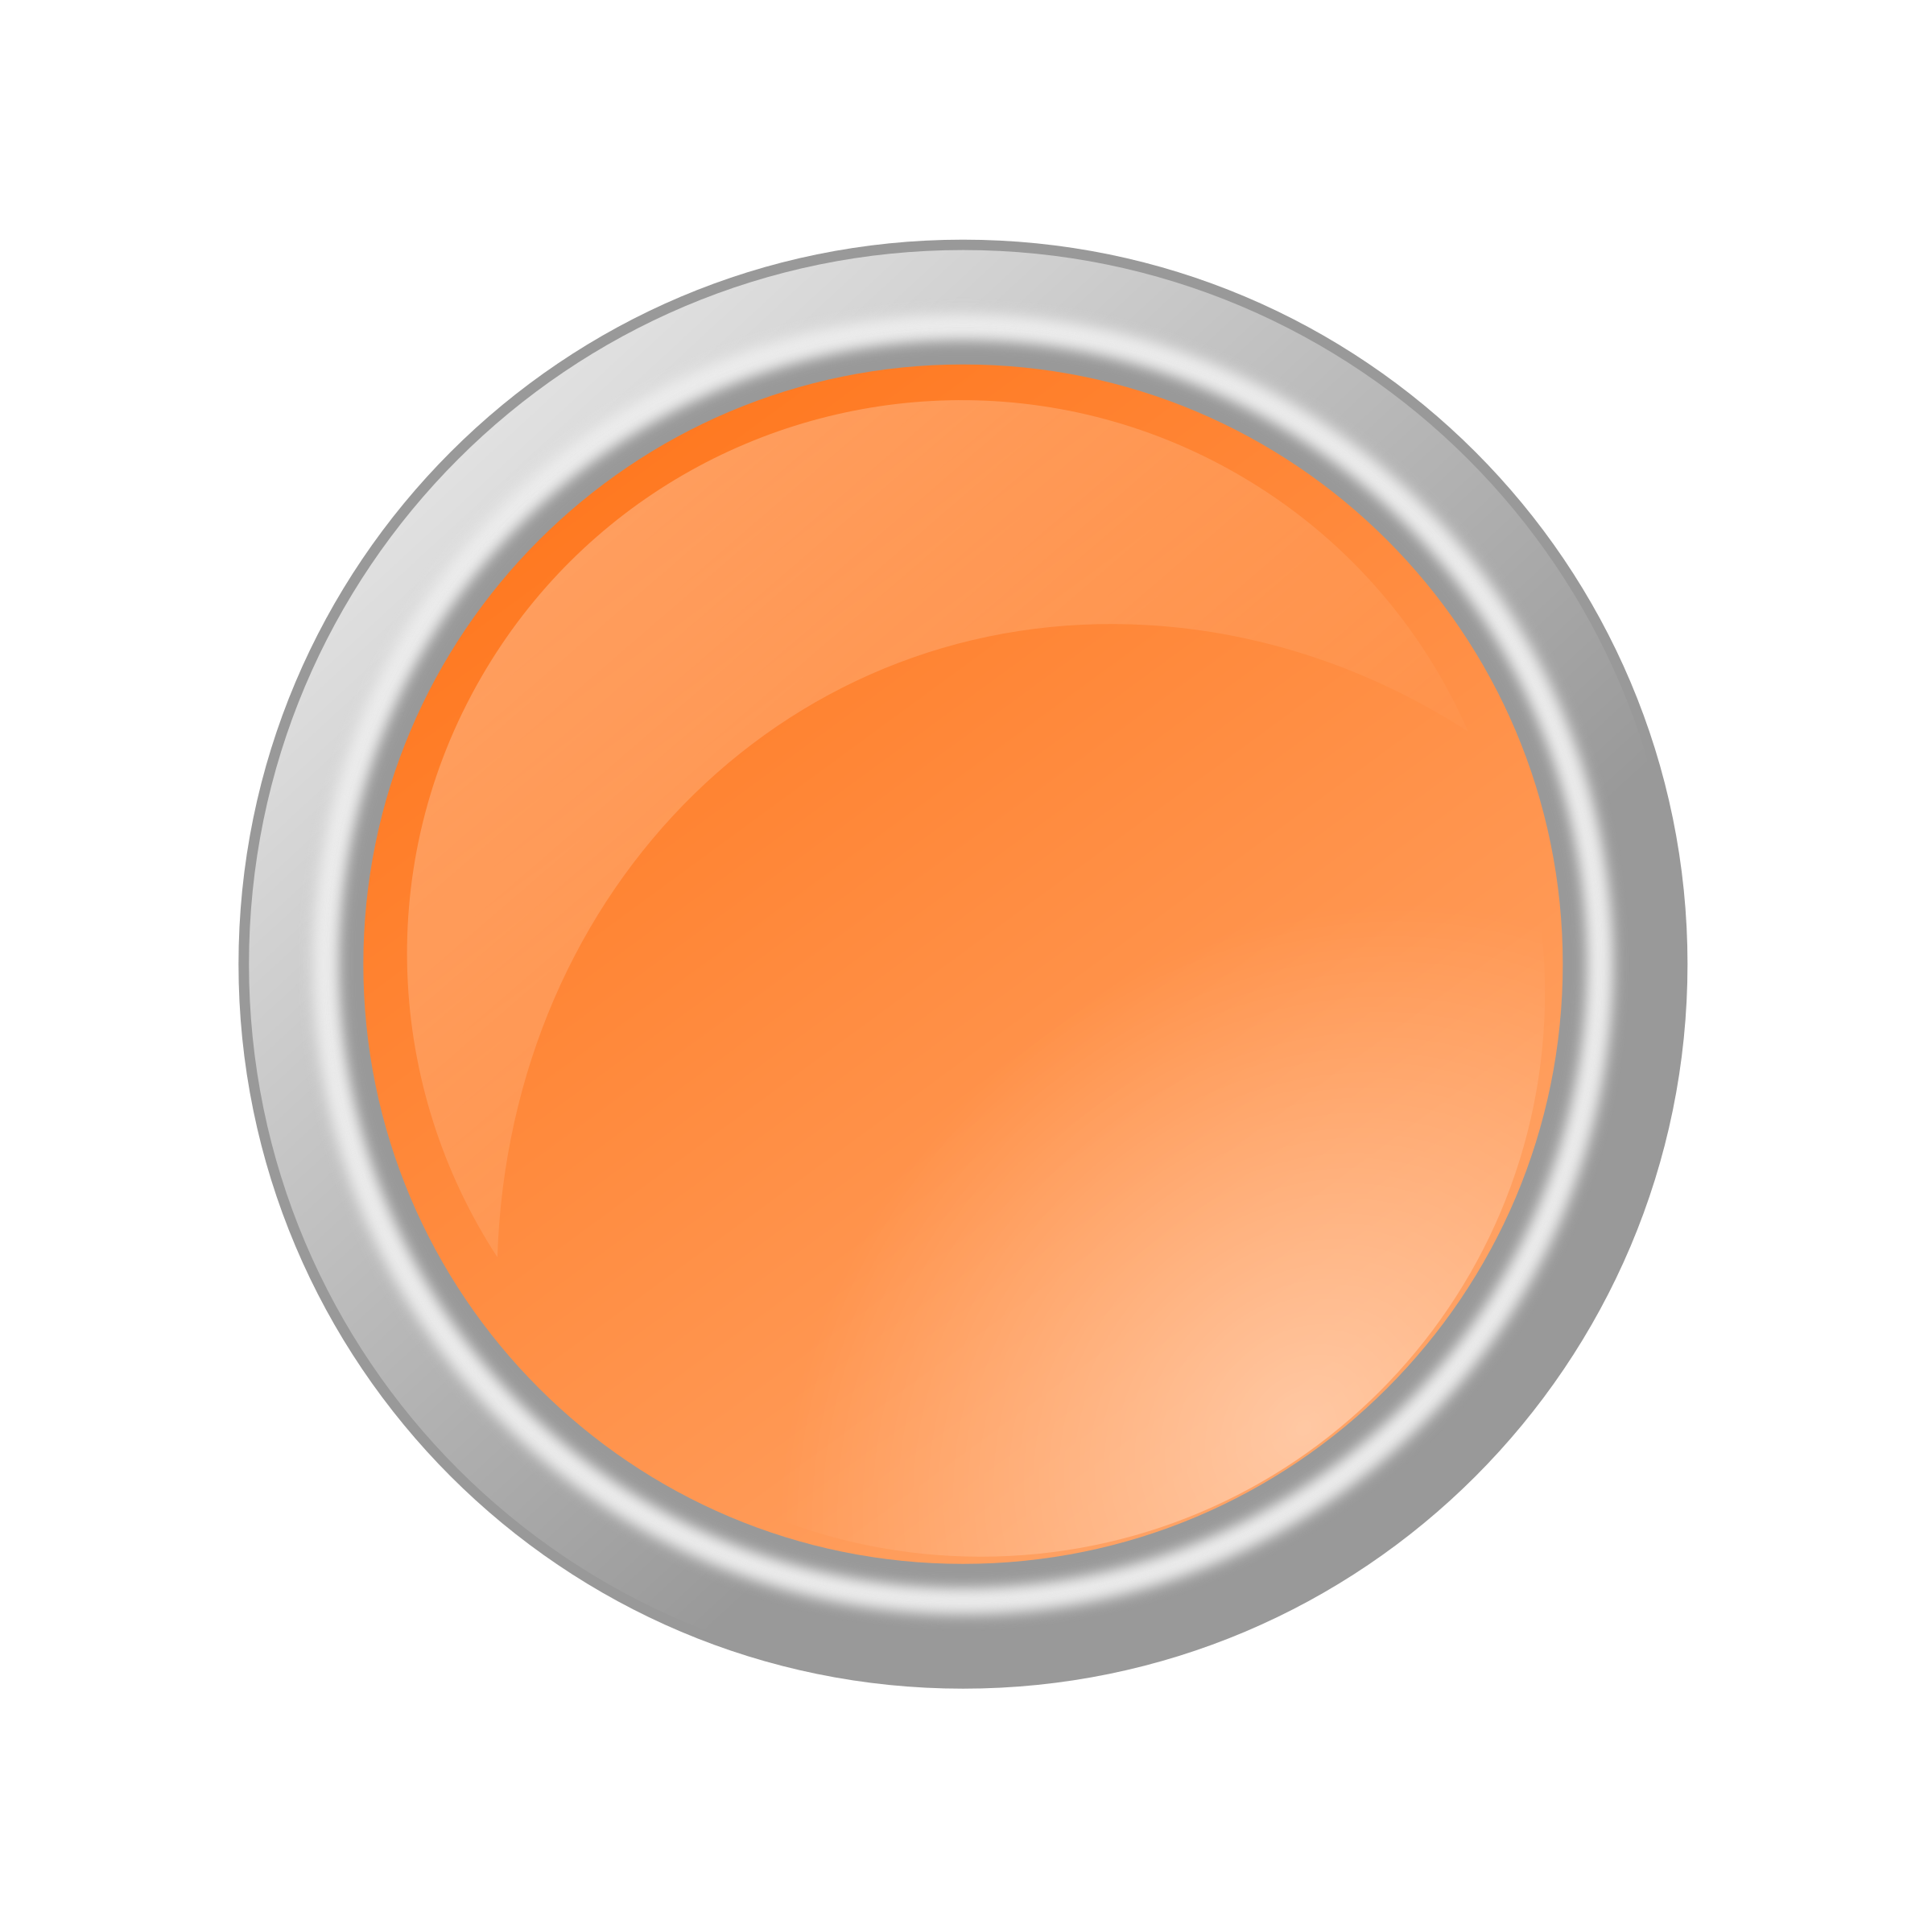 Glossy Light Orange Button by rygle